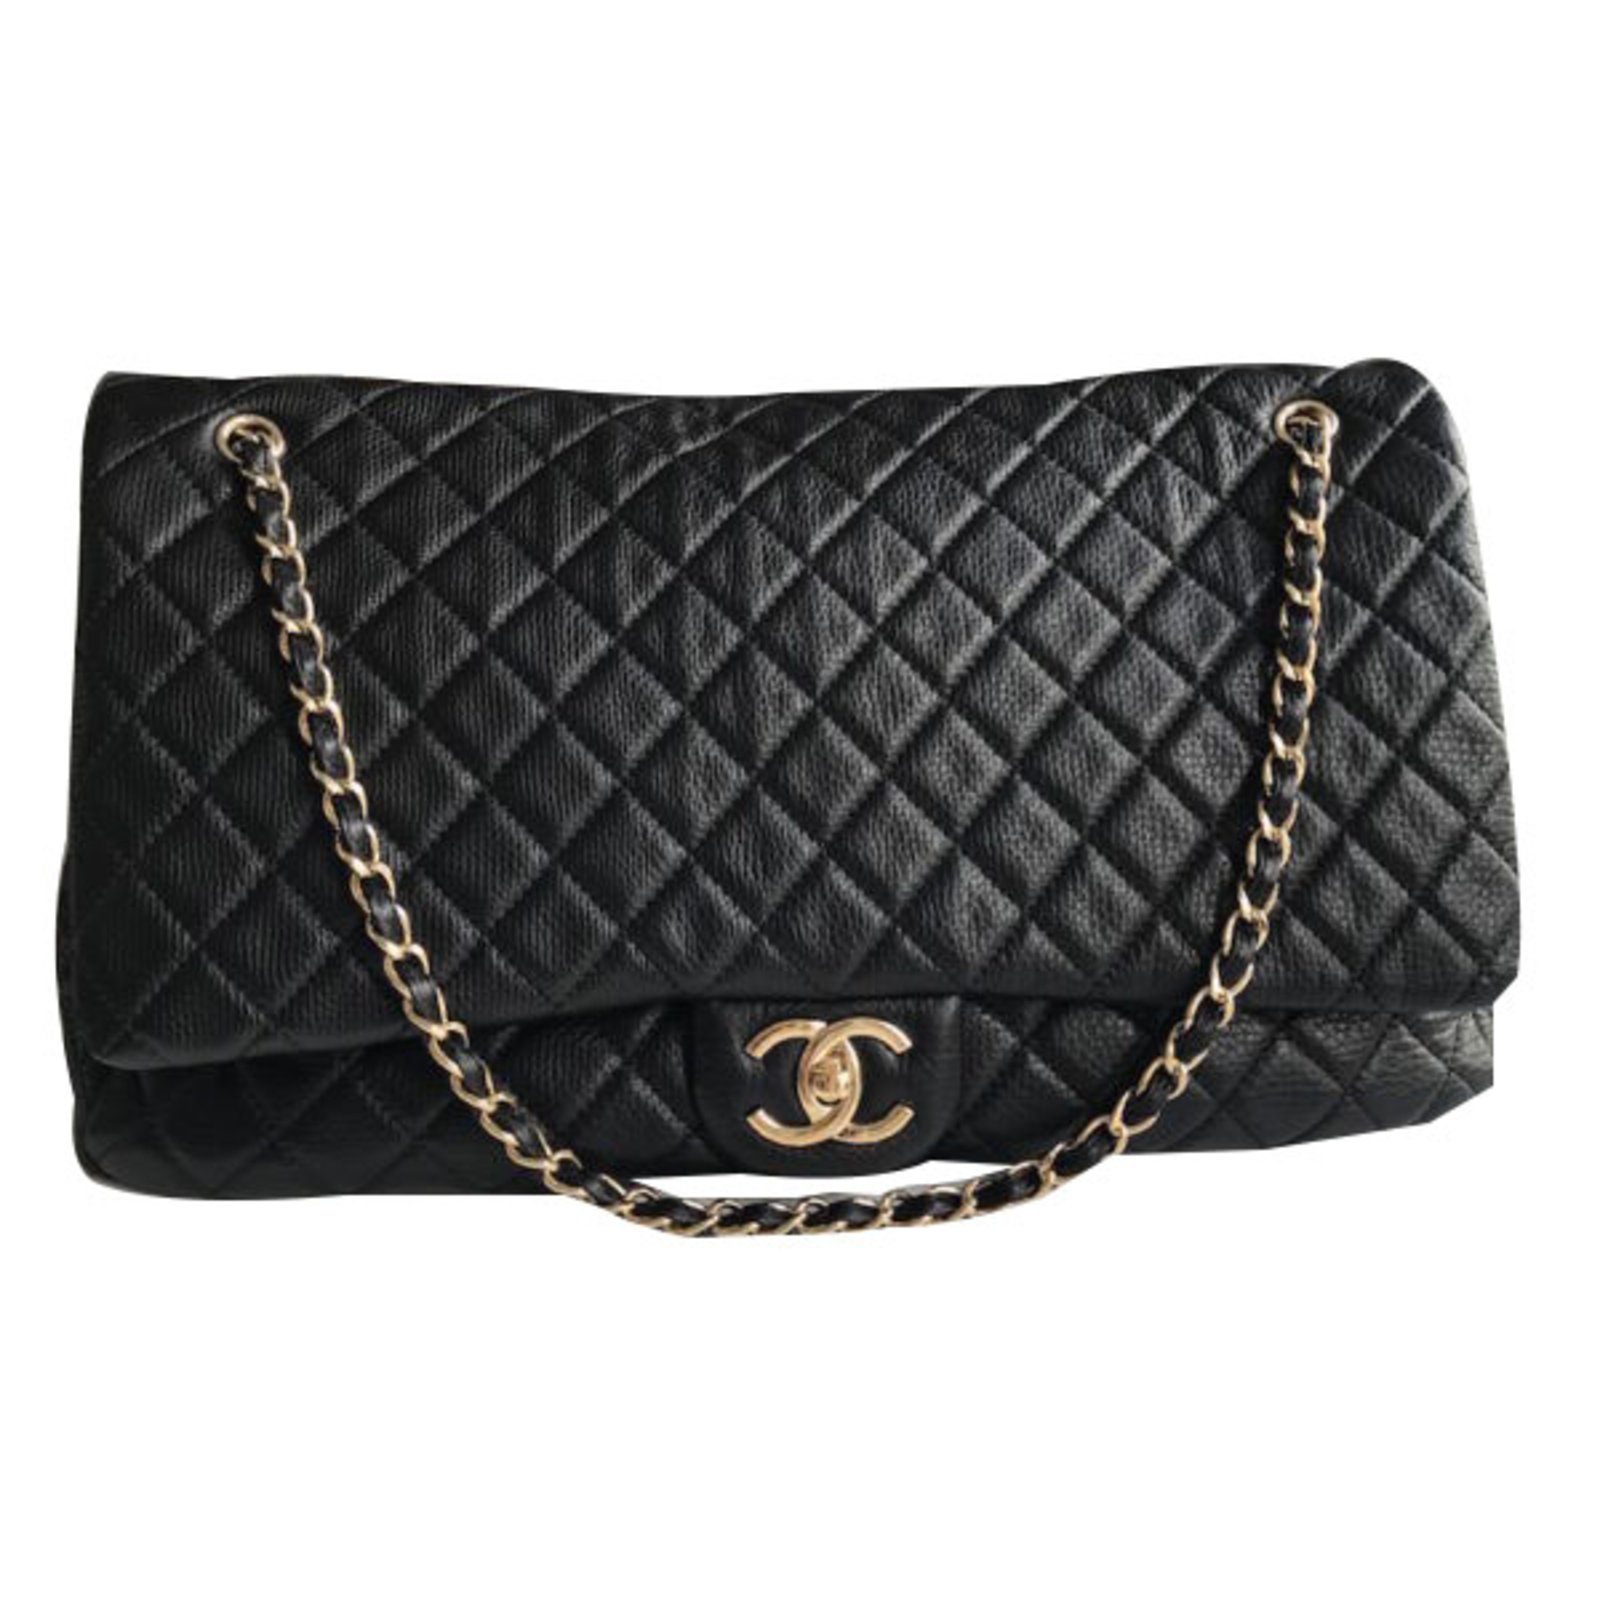 Chanel Timeless L Travel Bag Leather Black Ref 49262